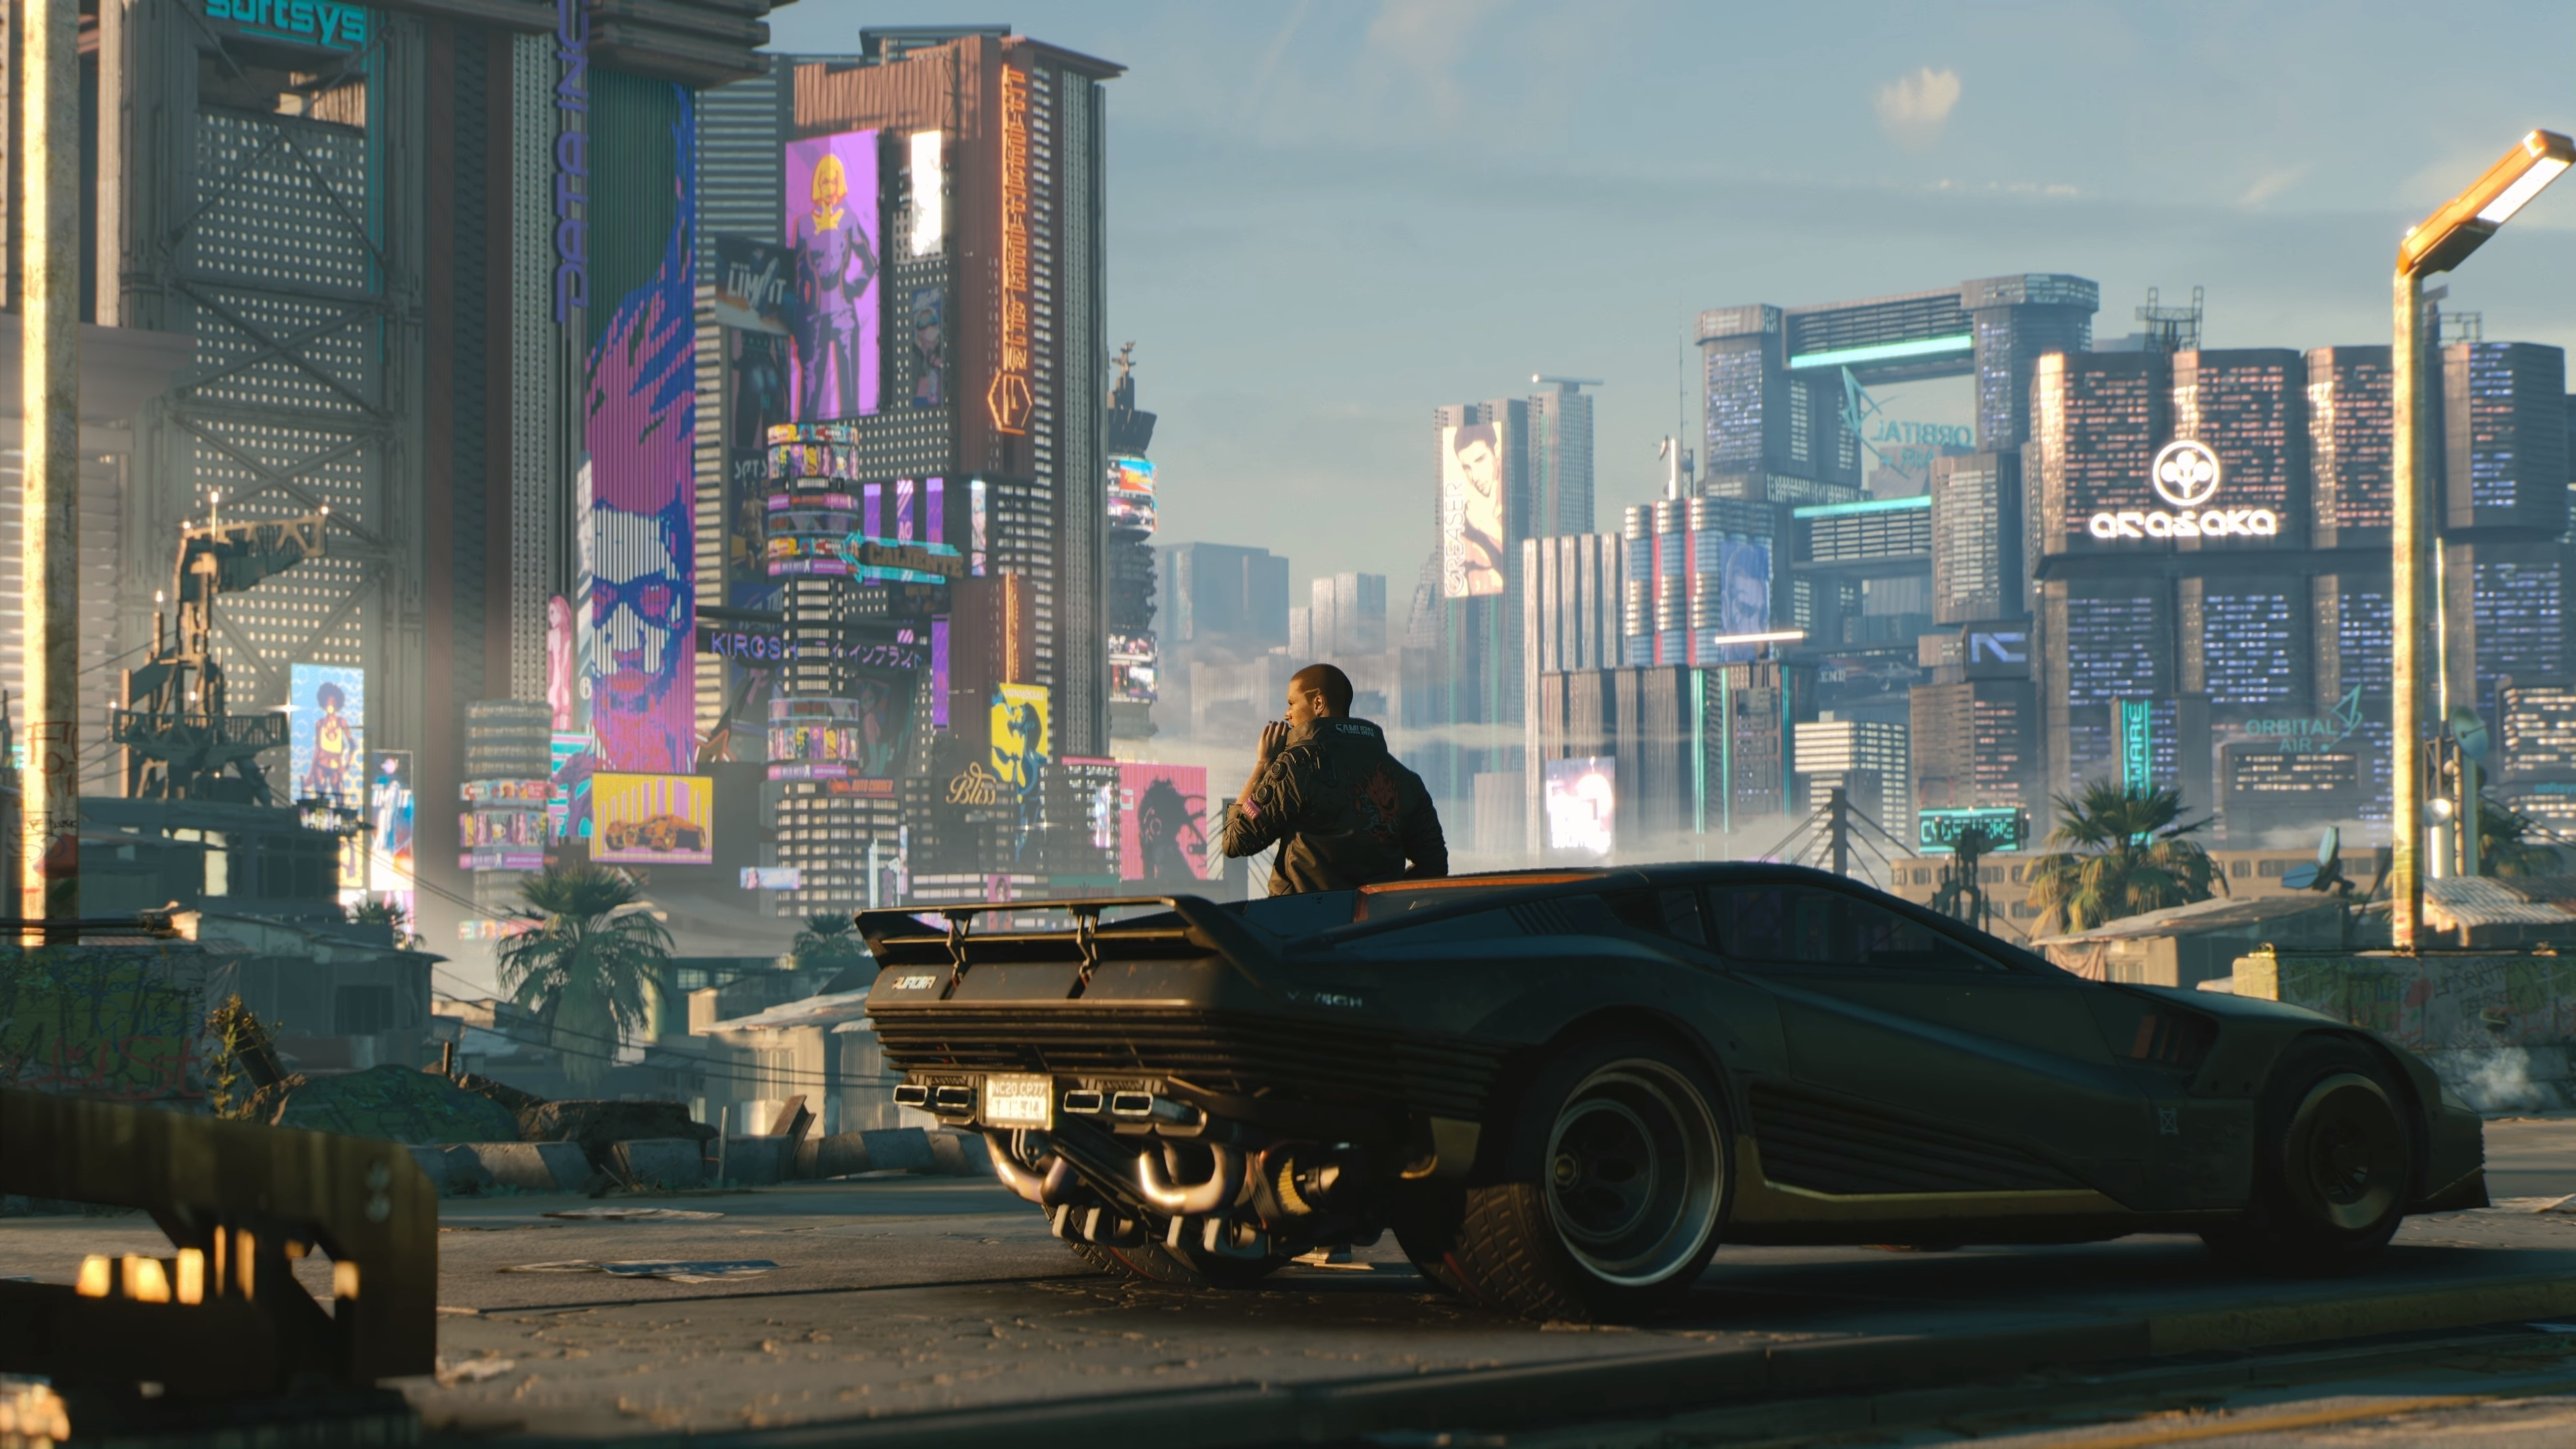 Cute Wallpaper For S5 Download 3840x2400 Wallpaper Cyberpunk 2077 Man With